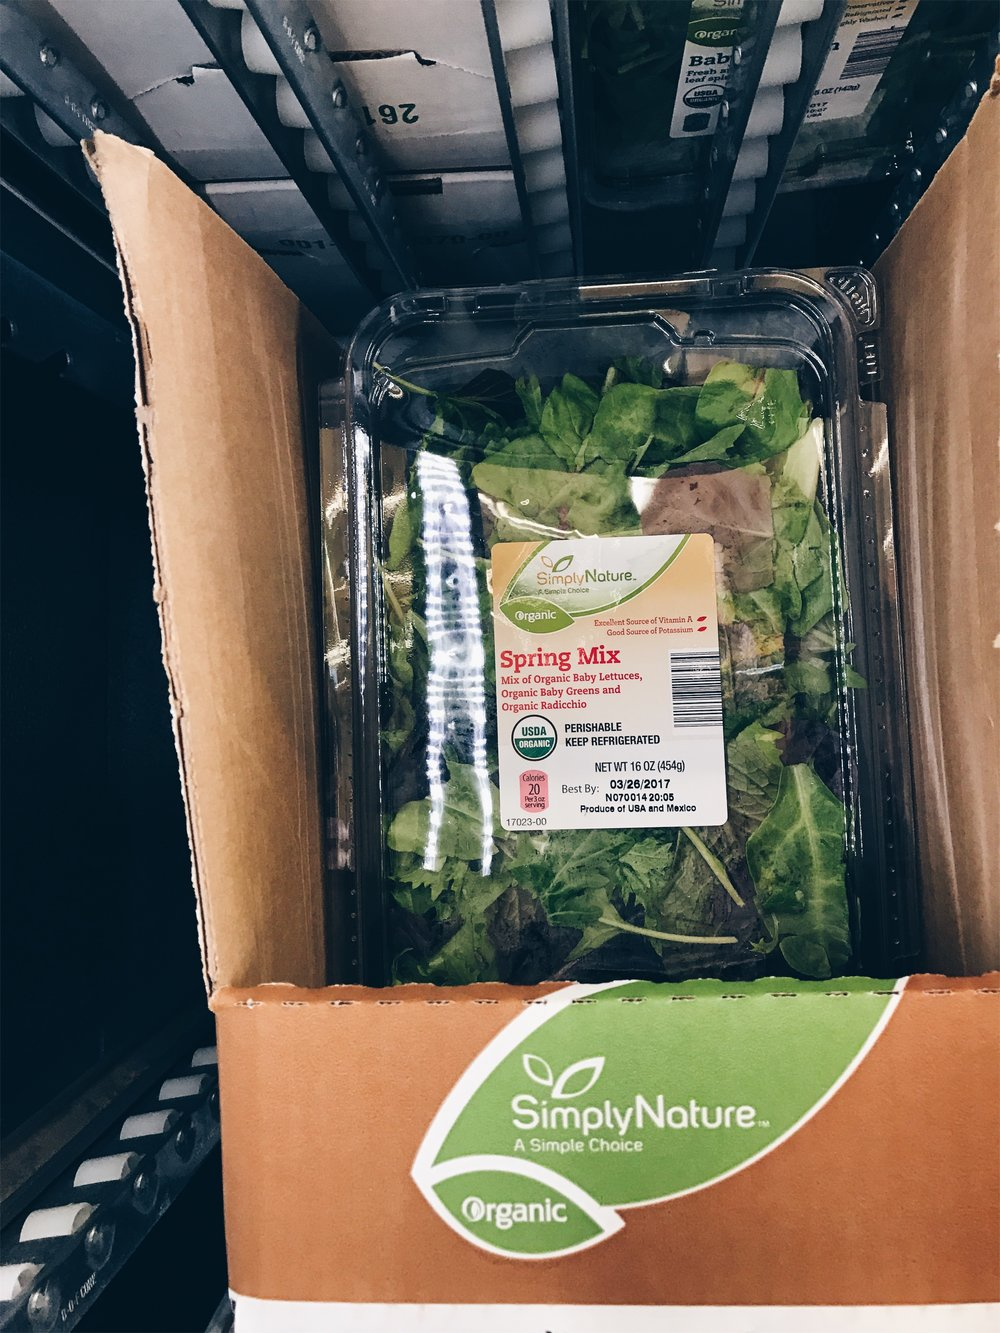 ALDI now carries several different boxed organic greens. I love my greens!! so this is a major plus for those of you who love salads or a some green to your morning smoothie like me.